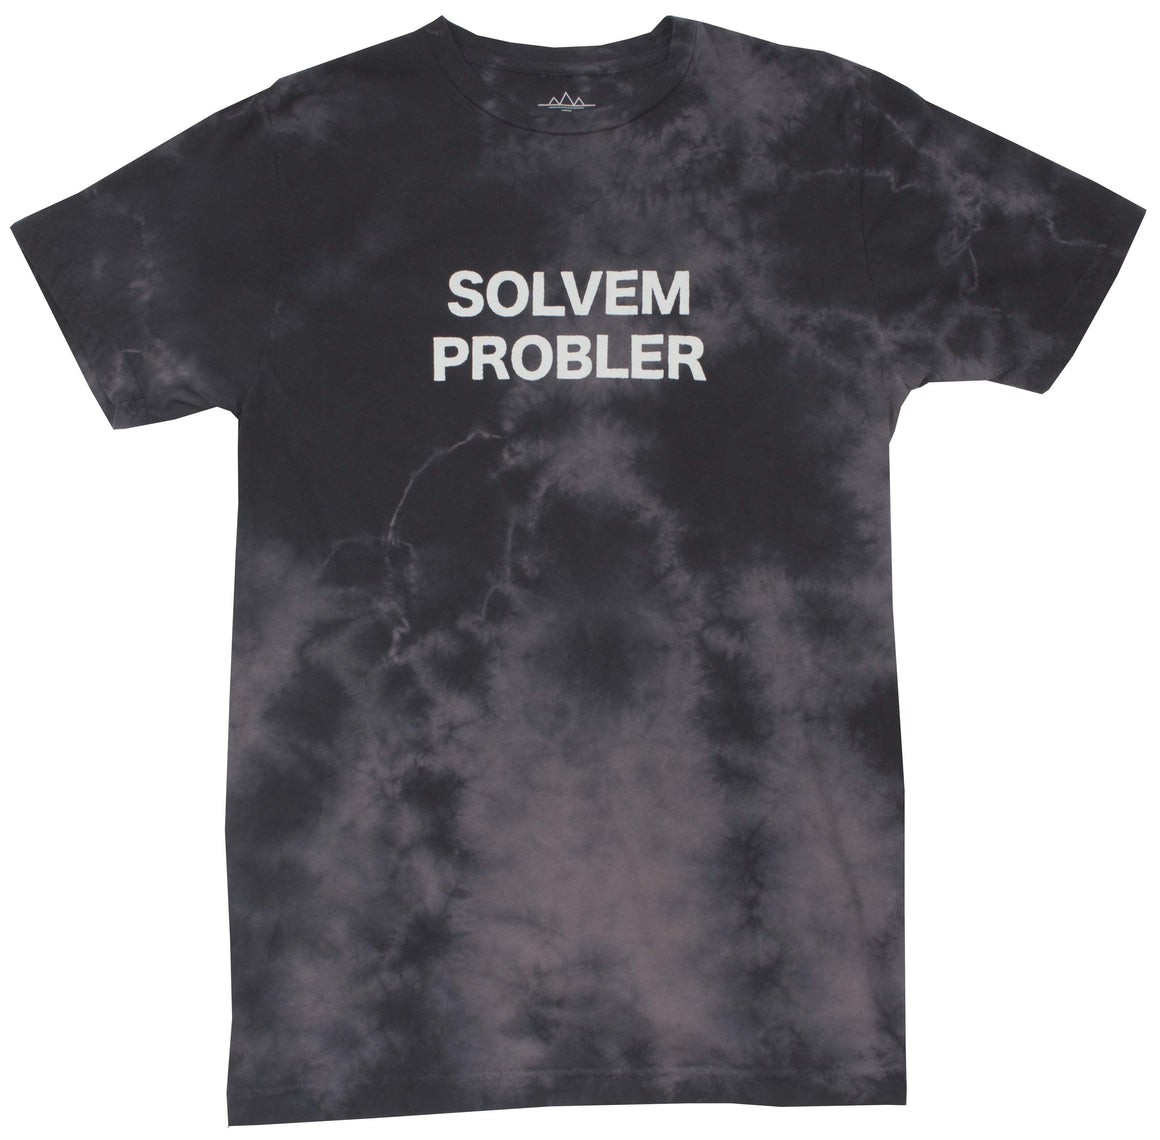 2c156daa Funny Solvem Probler Mens Black Graphic Tee by Altru Apparel front image